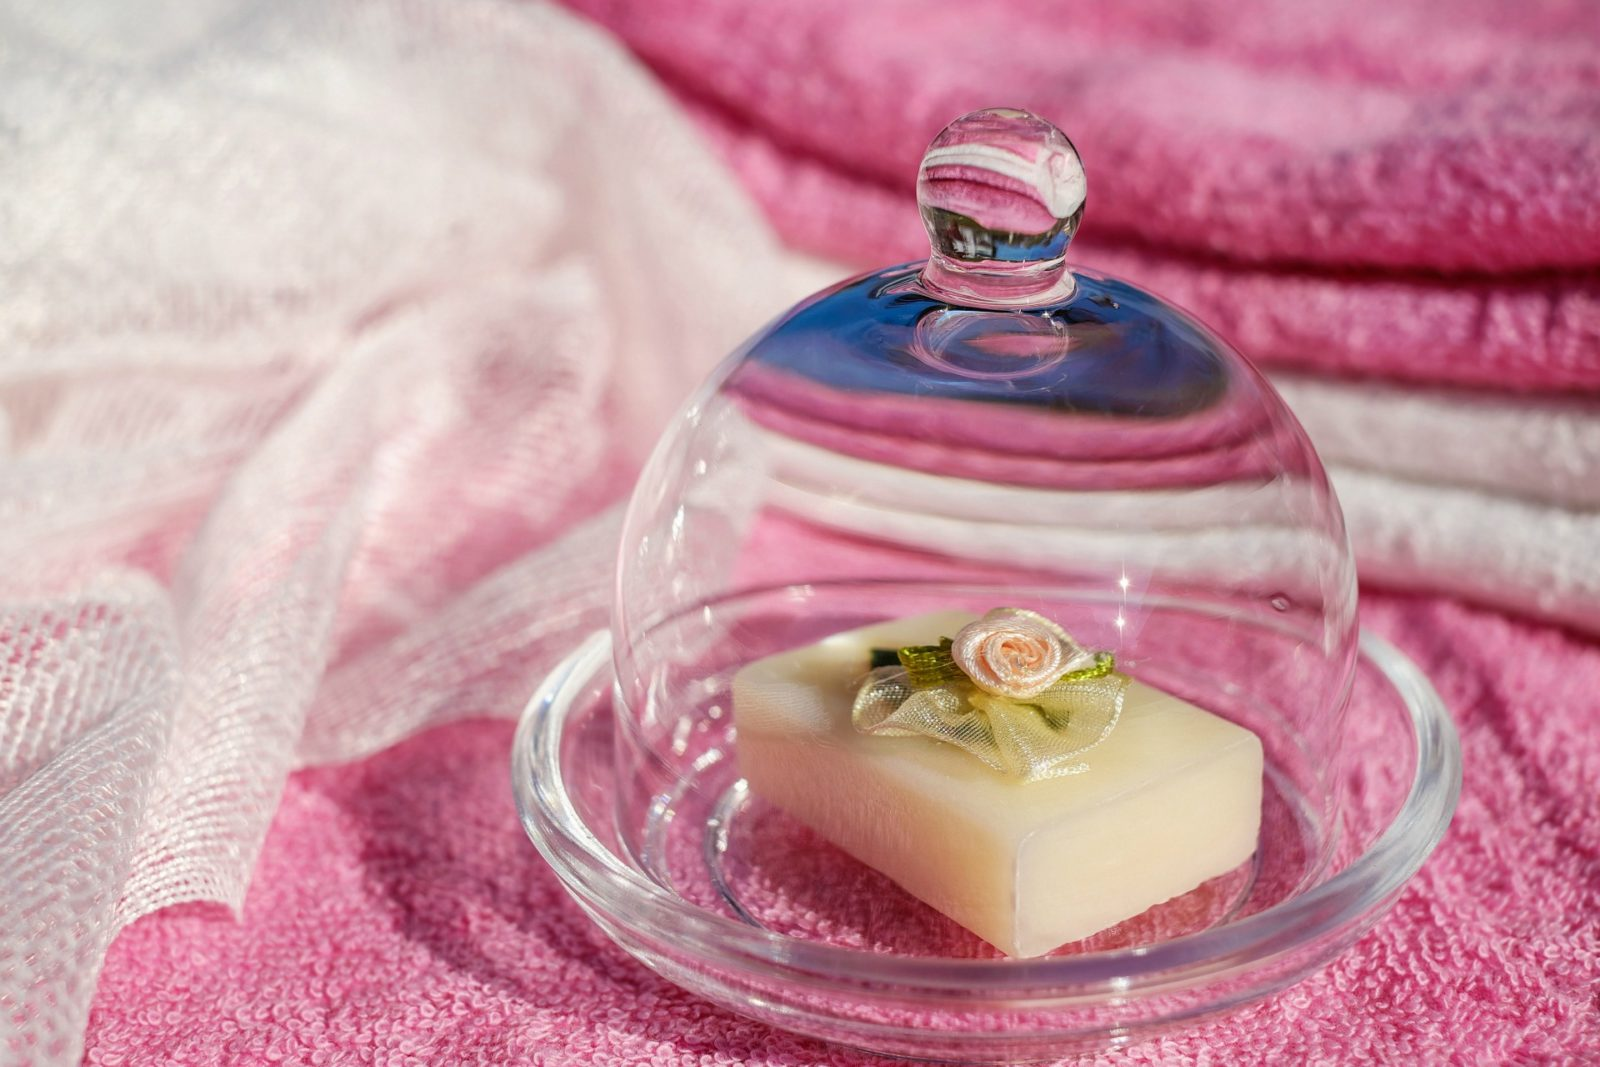 Soap is not recommended for the face or body.